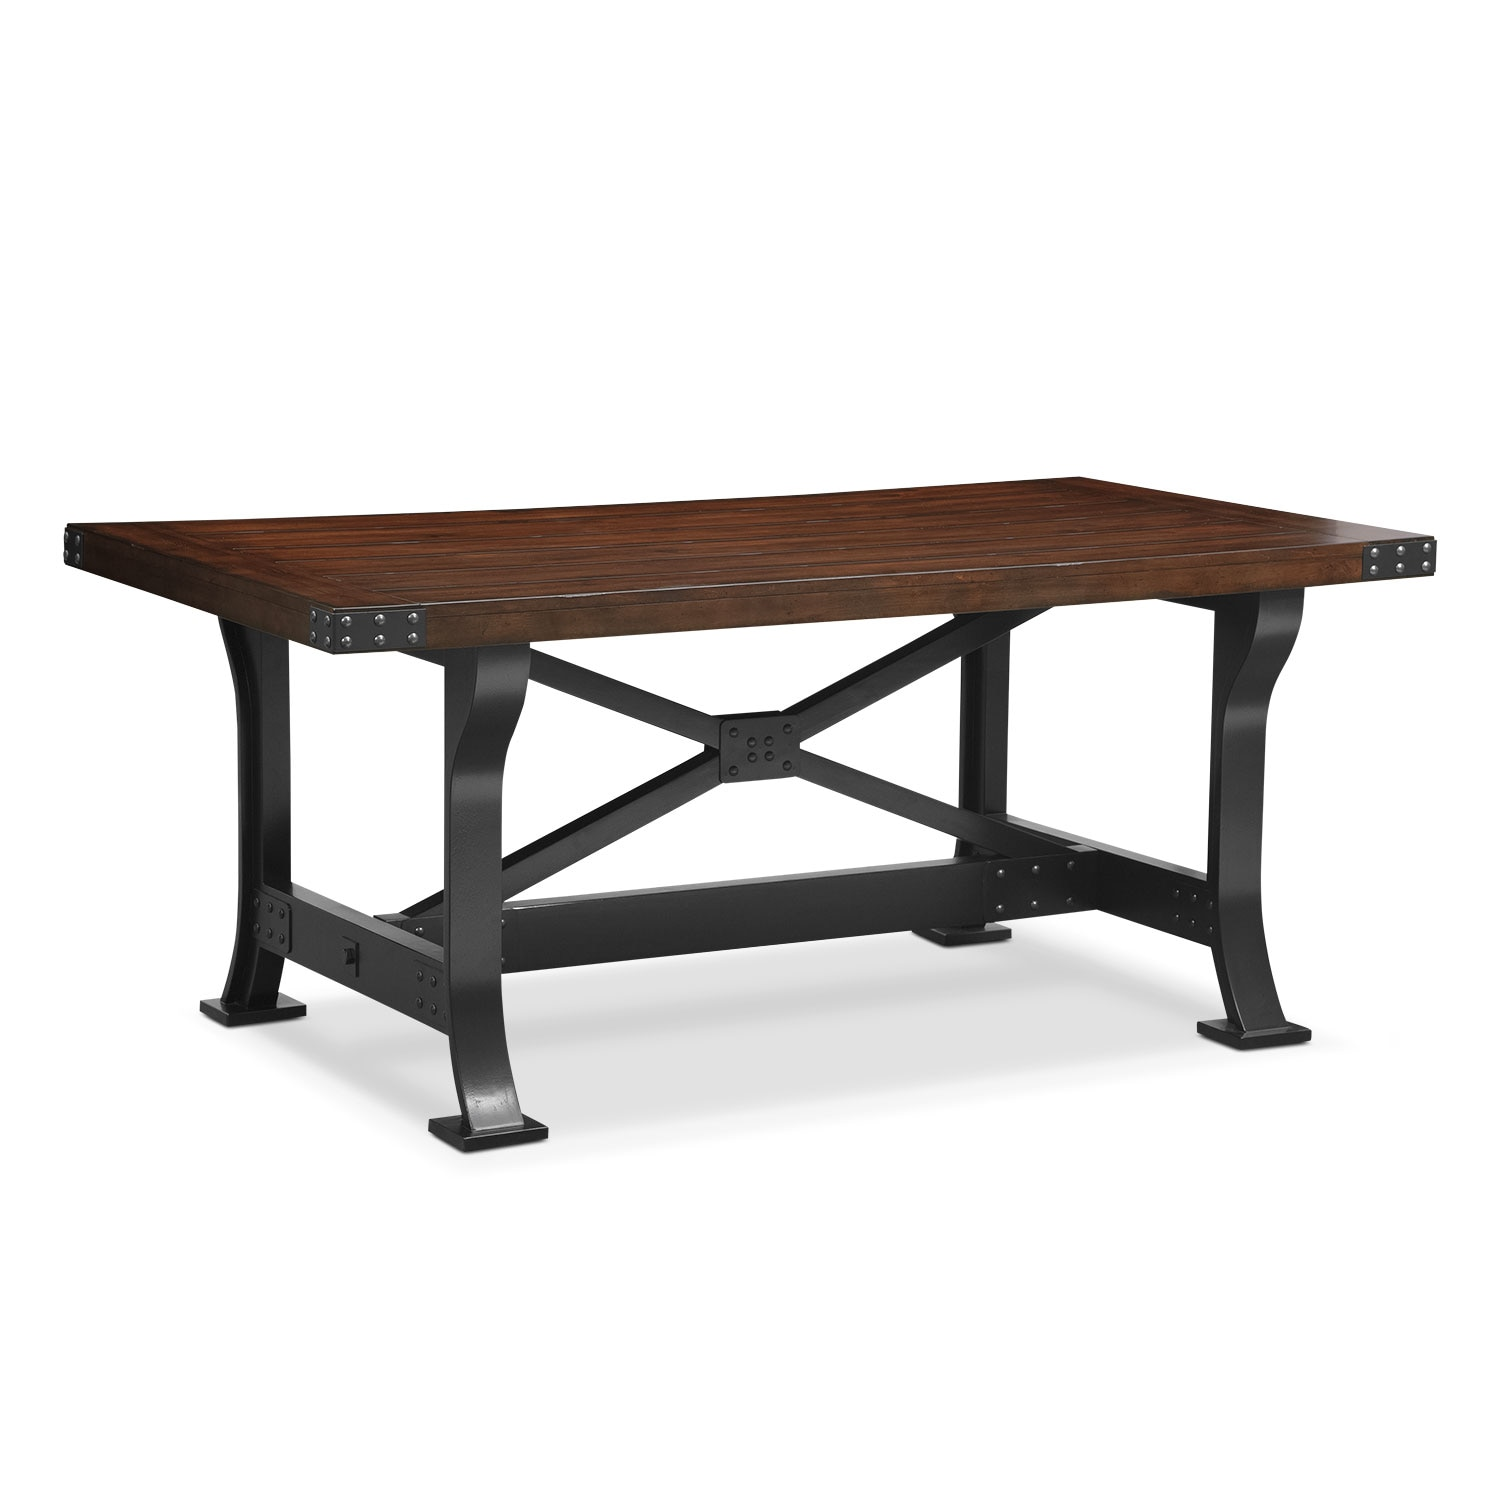 Newcastle standard height dining table american for Standard dining room table height